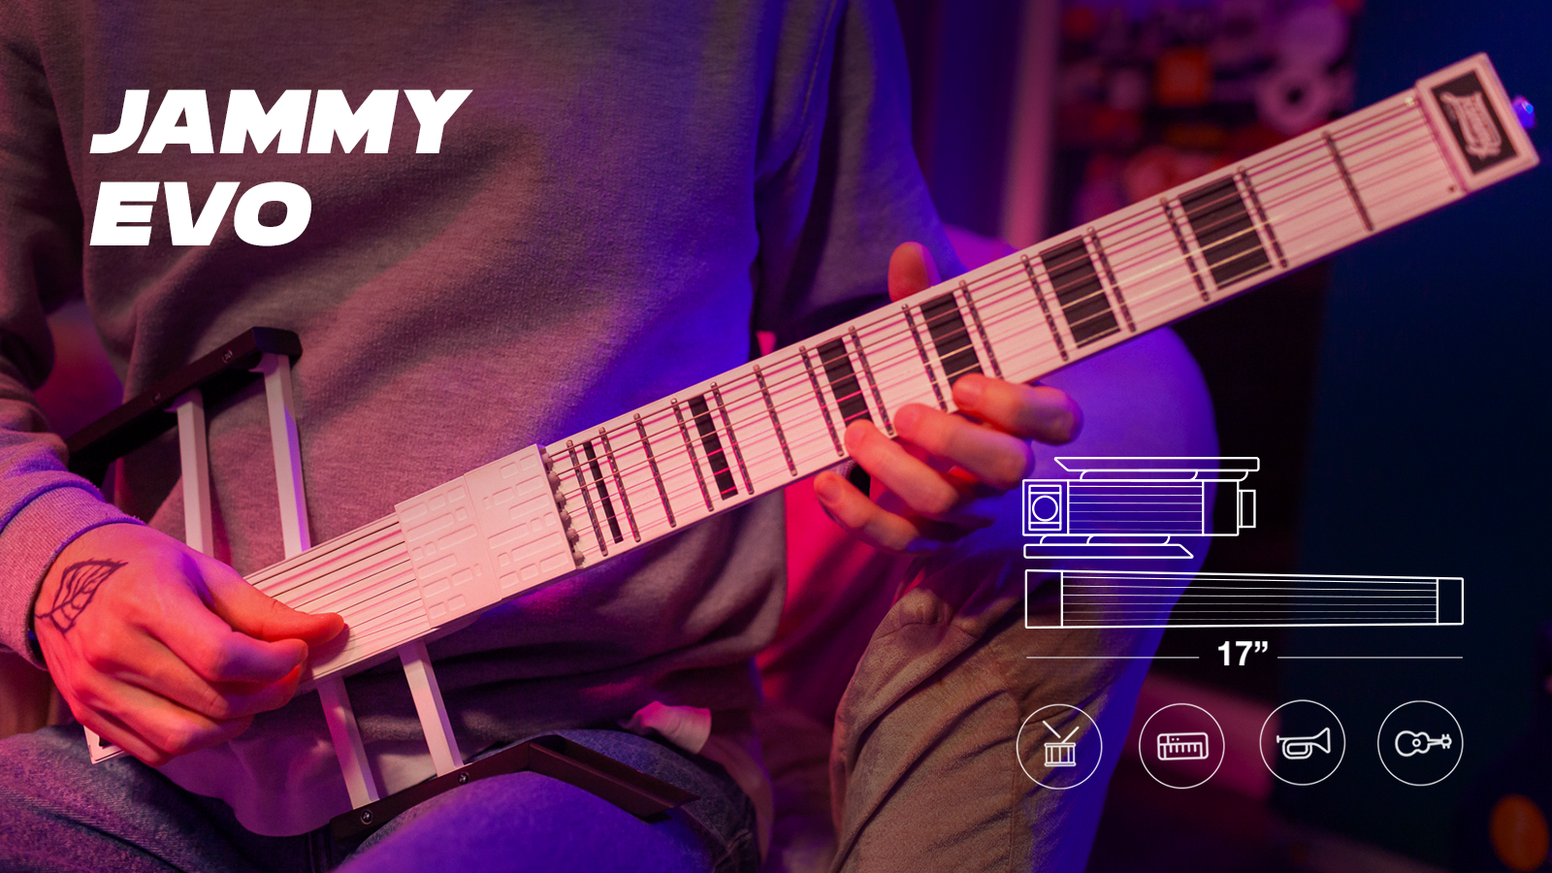 A MIDI controller to evolve your guitar playing into full-fledged music production